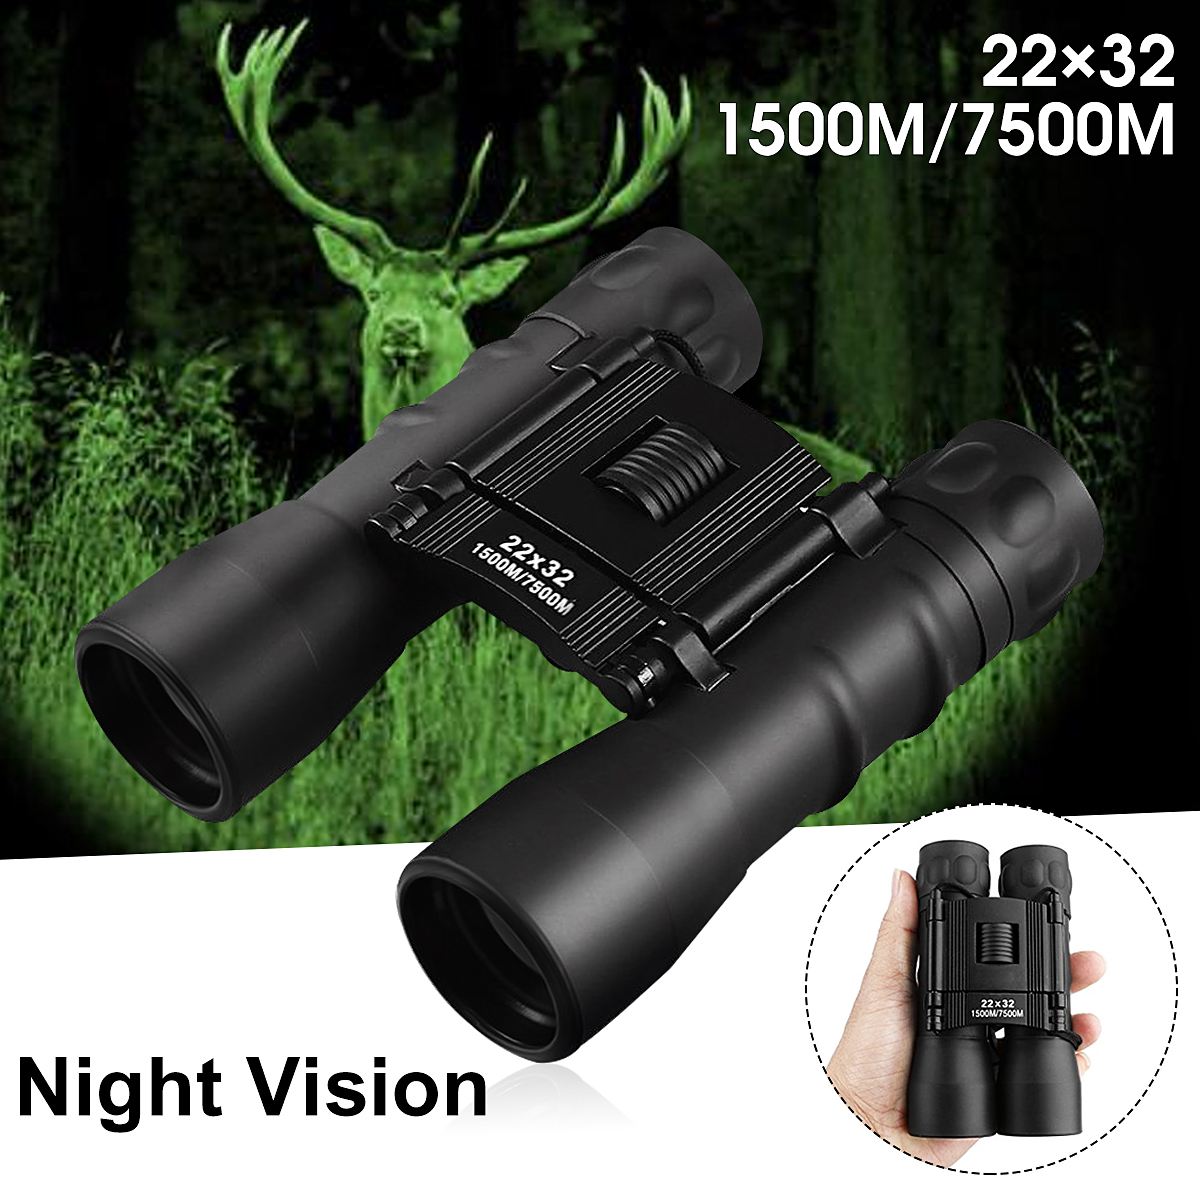 ARCHEER Binoculars Telescope Portable 22x32 Magnification 7500M Zoomable Folding Binoculars Binoculars & Monoculars Telescope With Night Vision for Outdoor Bird Watching Travelling Sightseeing Hunting